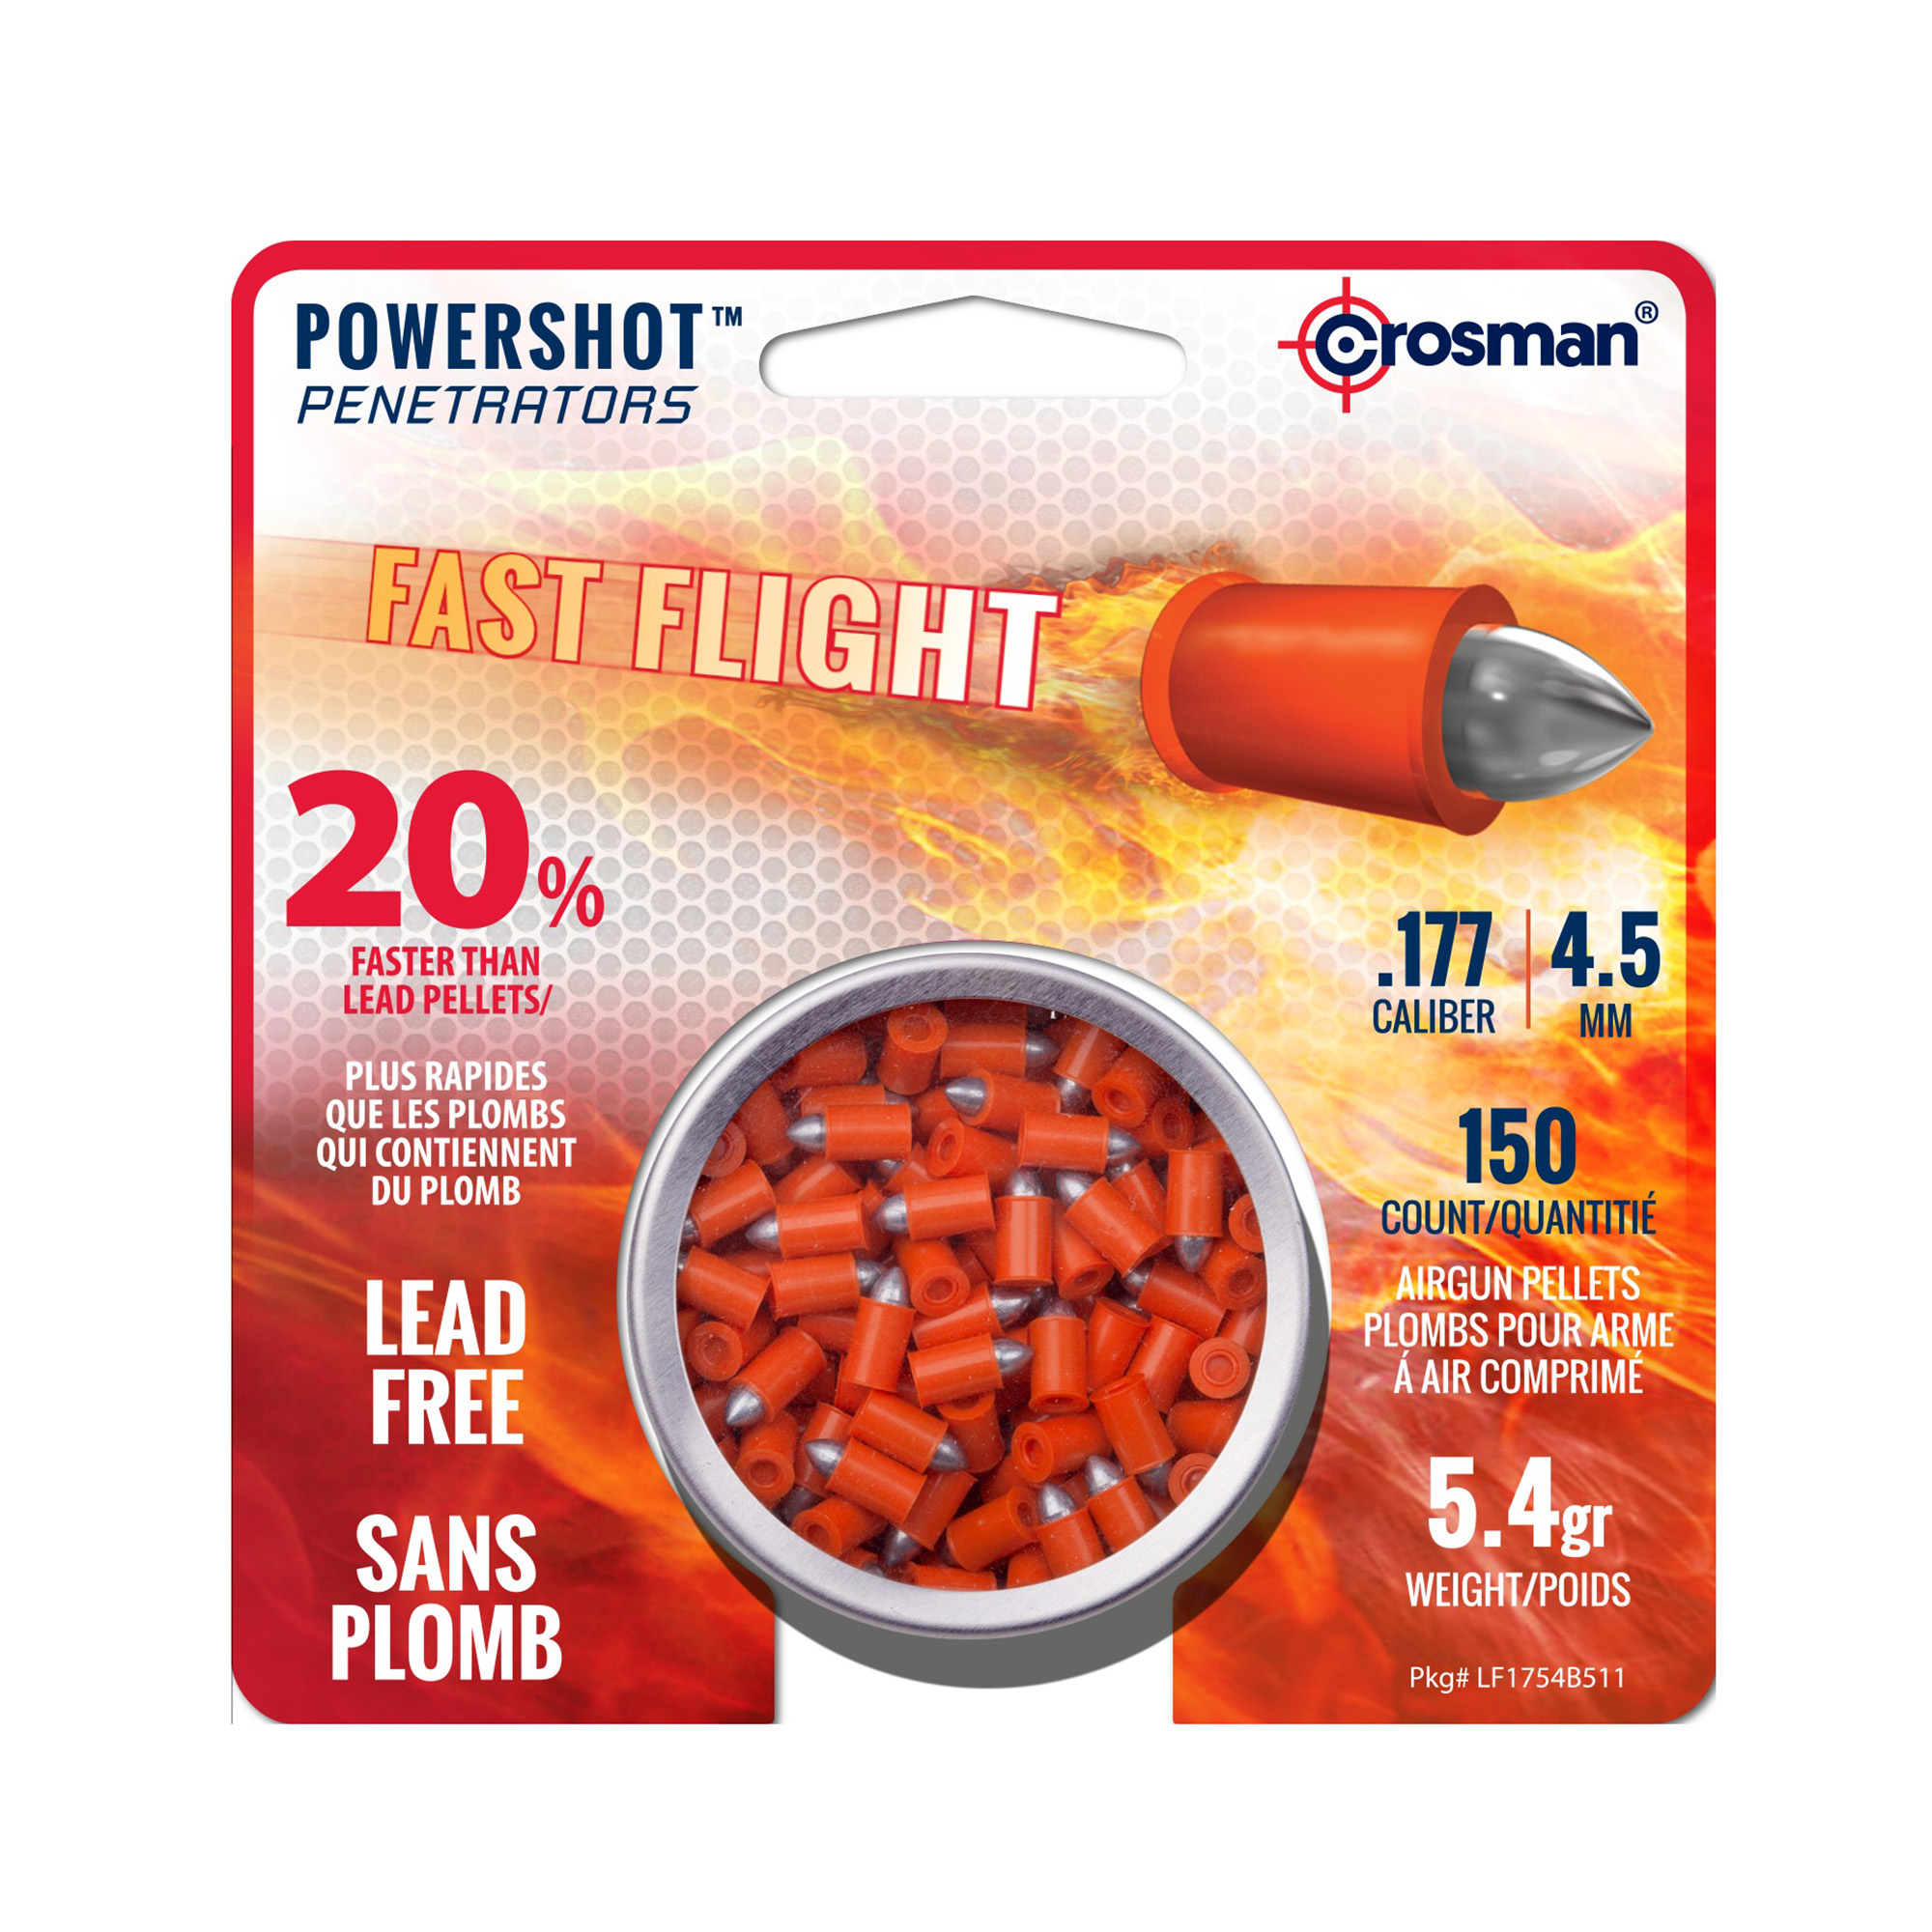 Crosman Powershot 177 Caliber Fast Flight Penetrator Pellets 150 ct LF1754 by Crosman